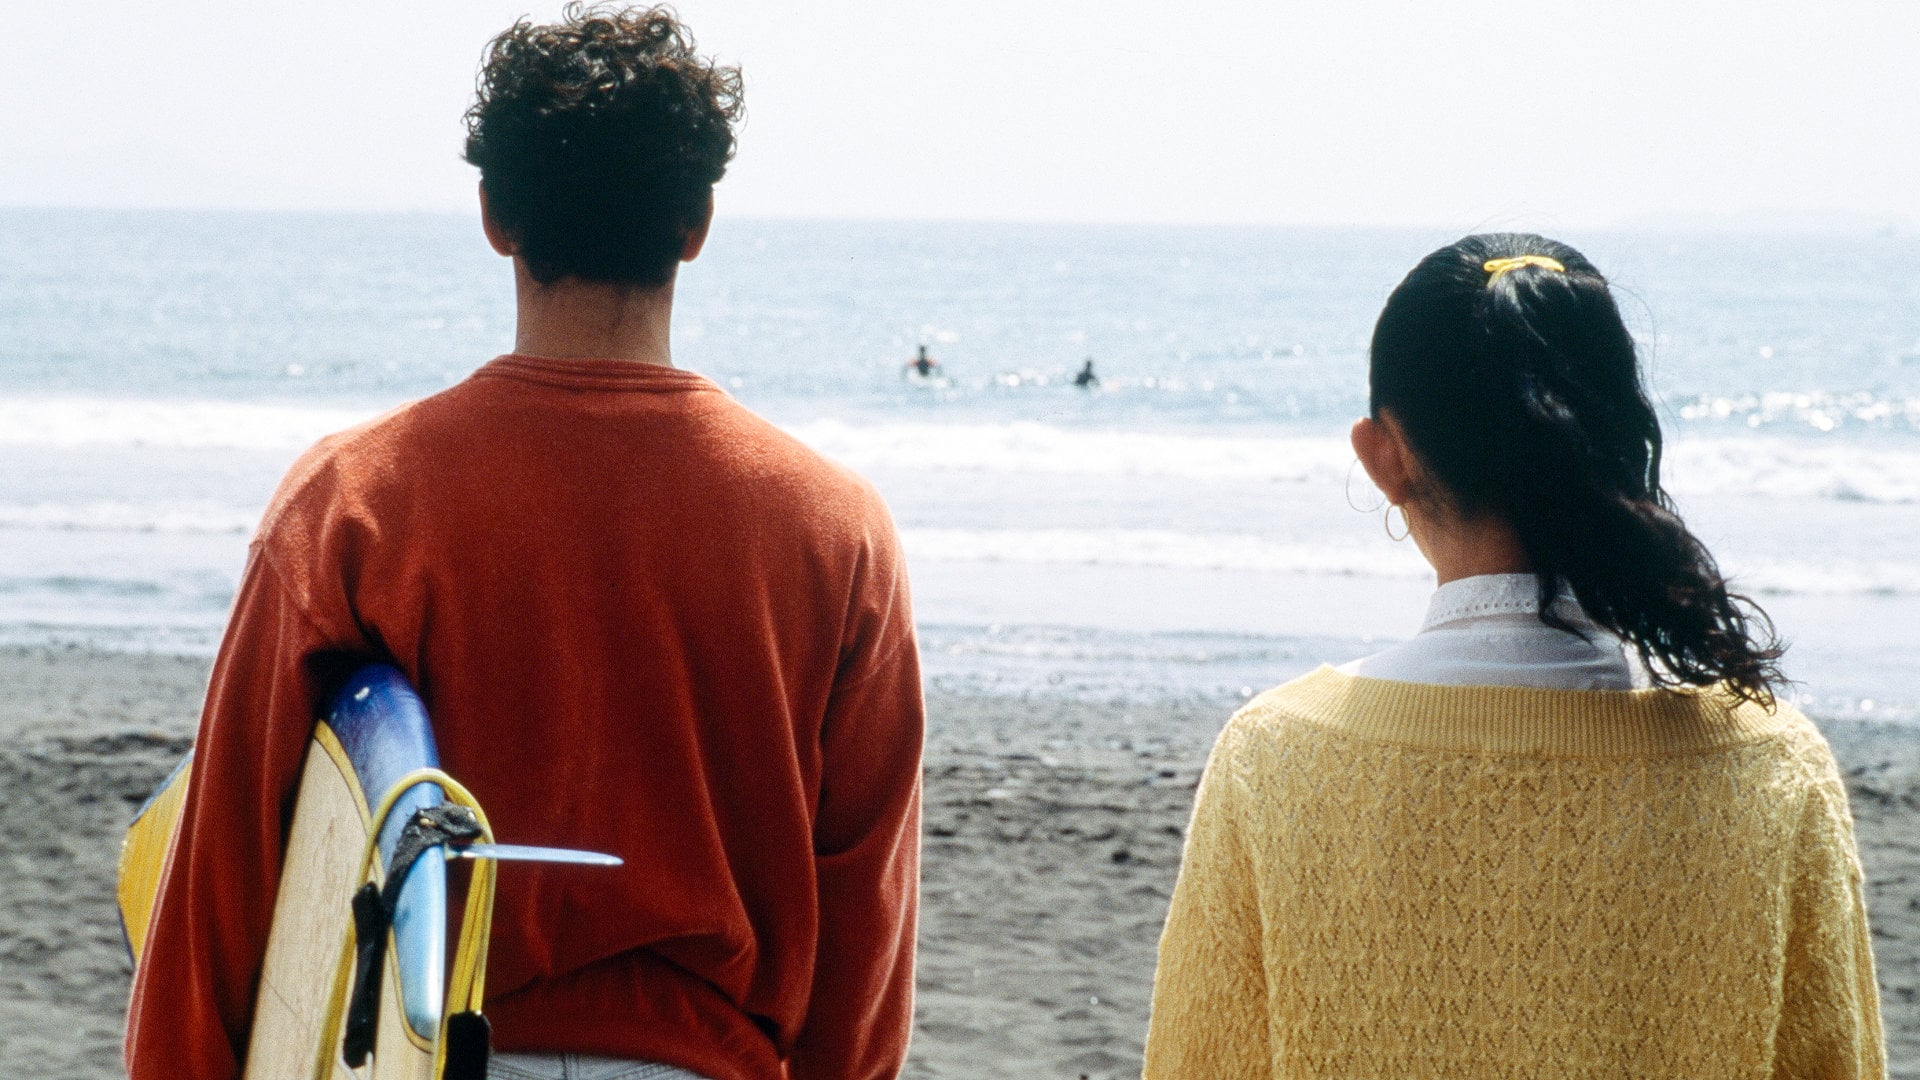 Hiroko Ôshima et Claude Maki sur la plage dans A Scene at the sea